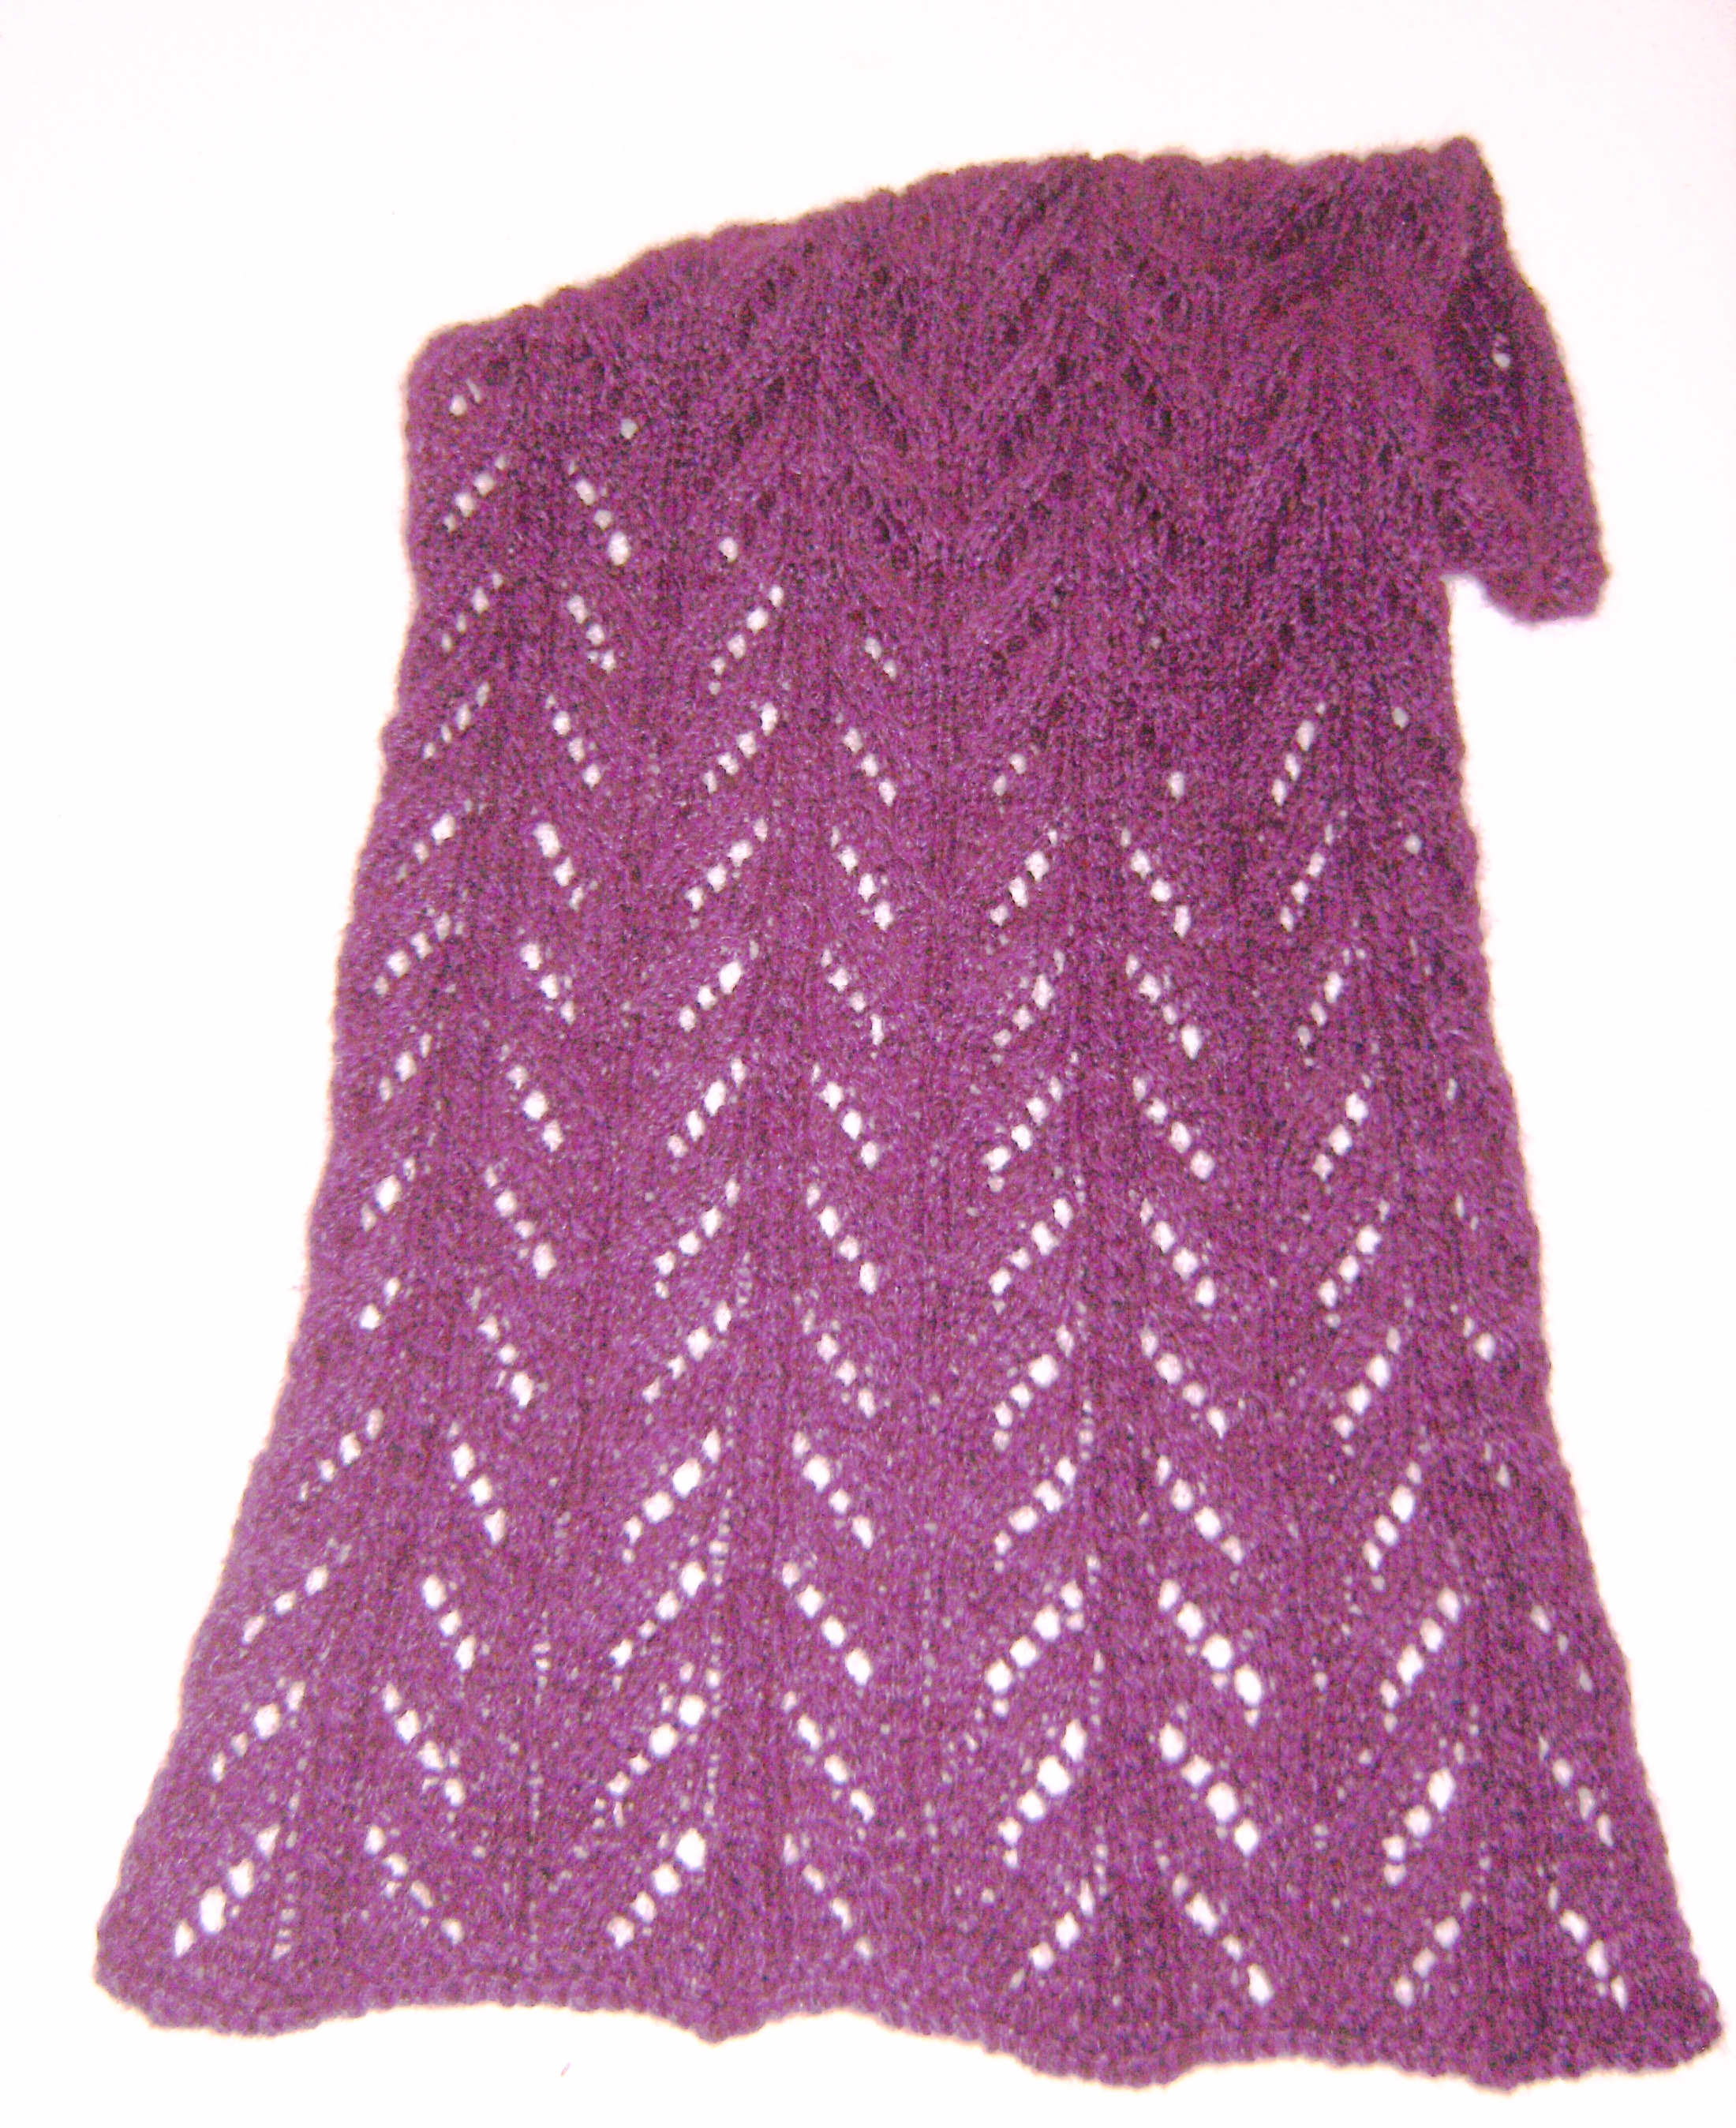 Free Knitting Patterns For Scarves For Beginners : Scarf Patterns For Beginners Patterns Gallery